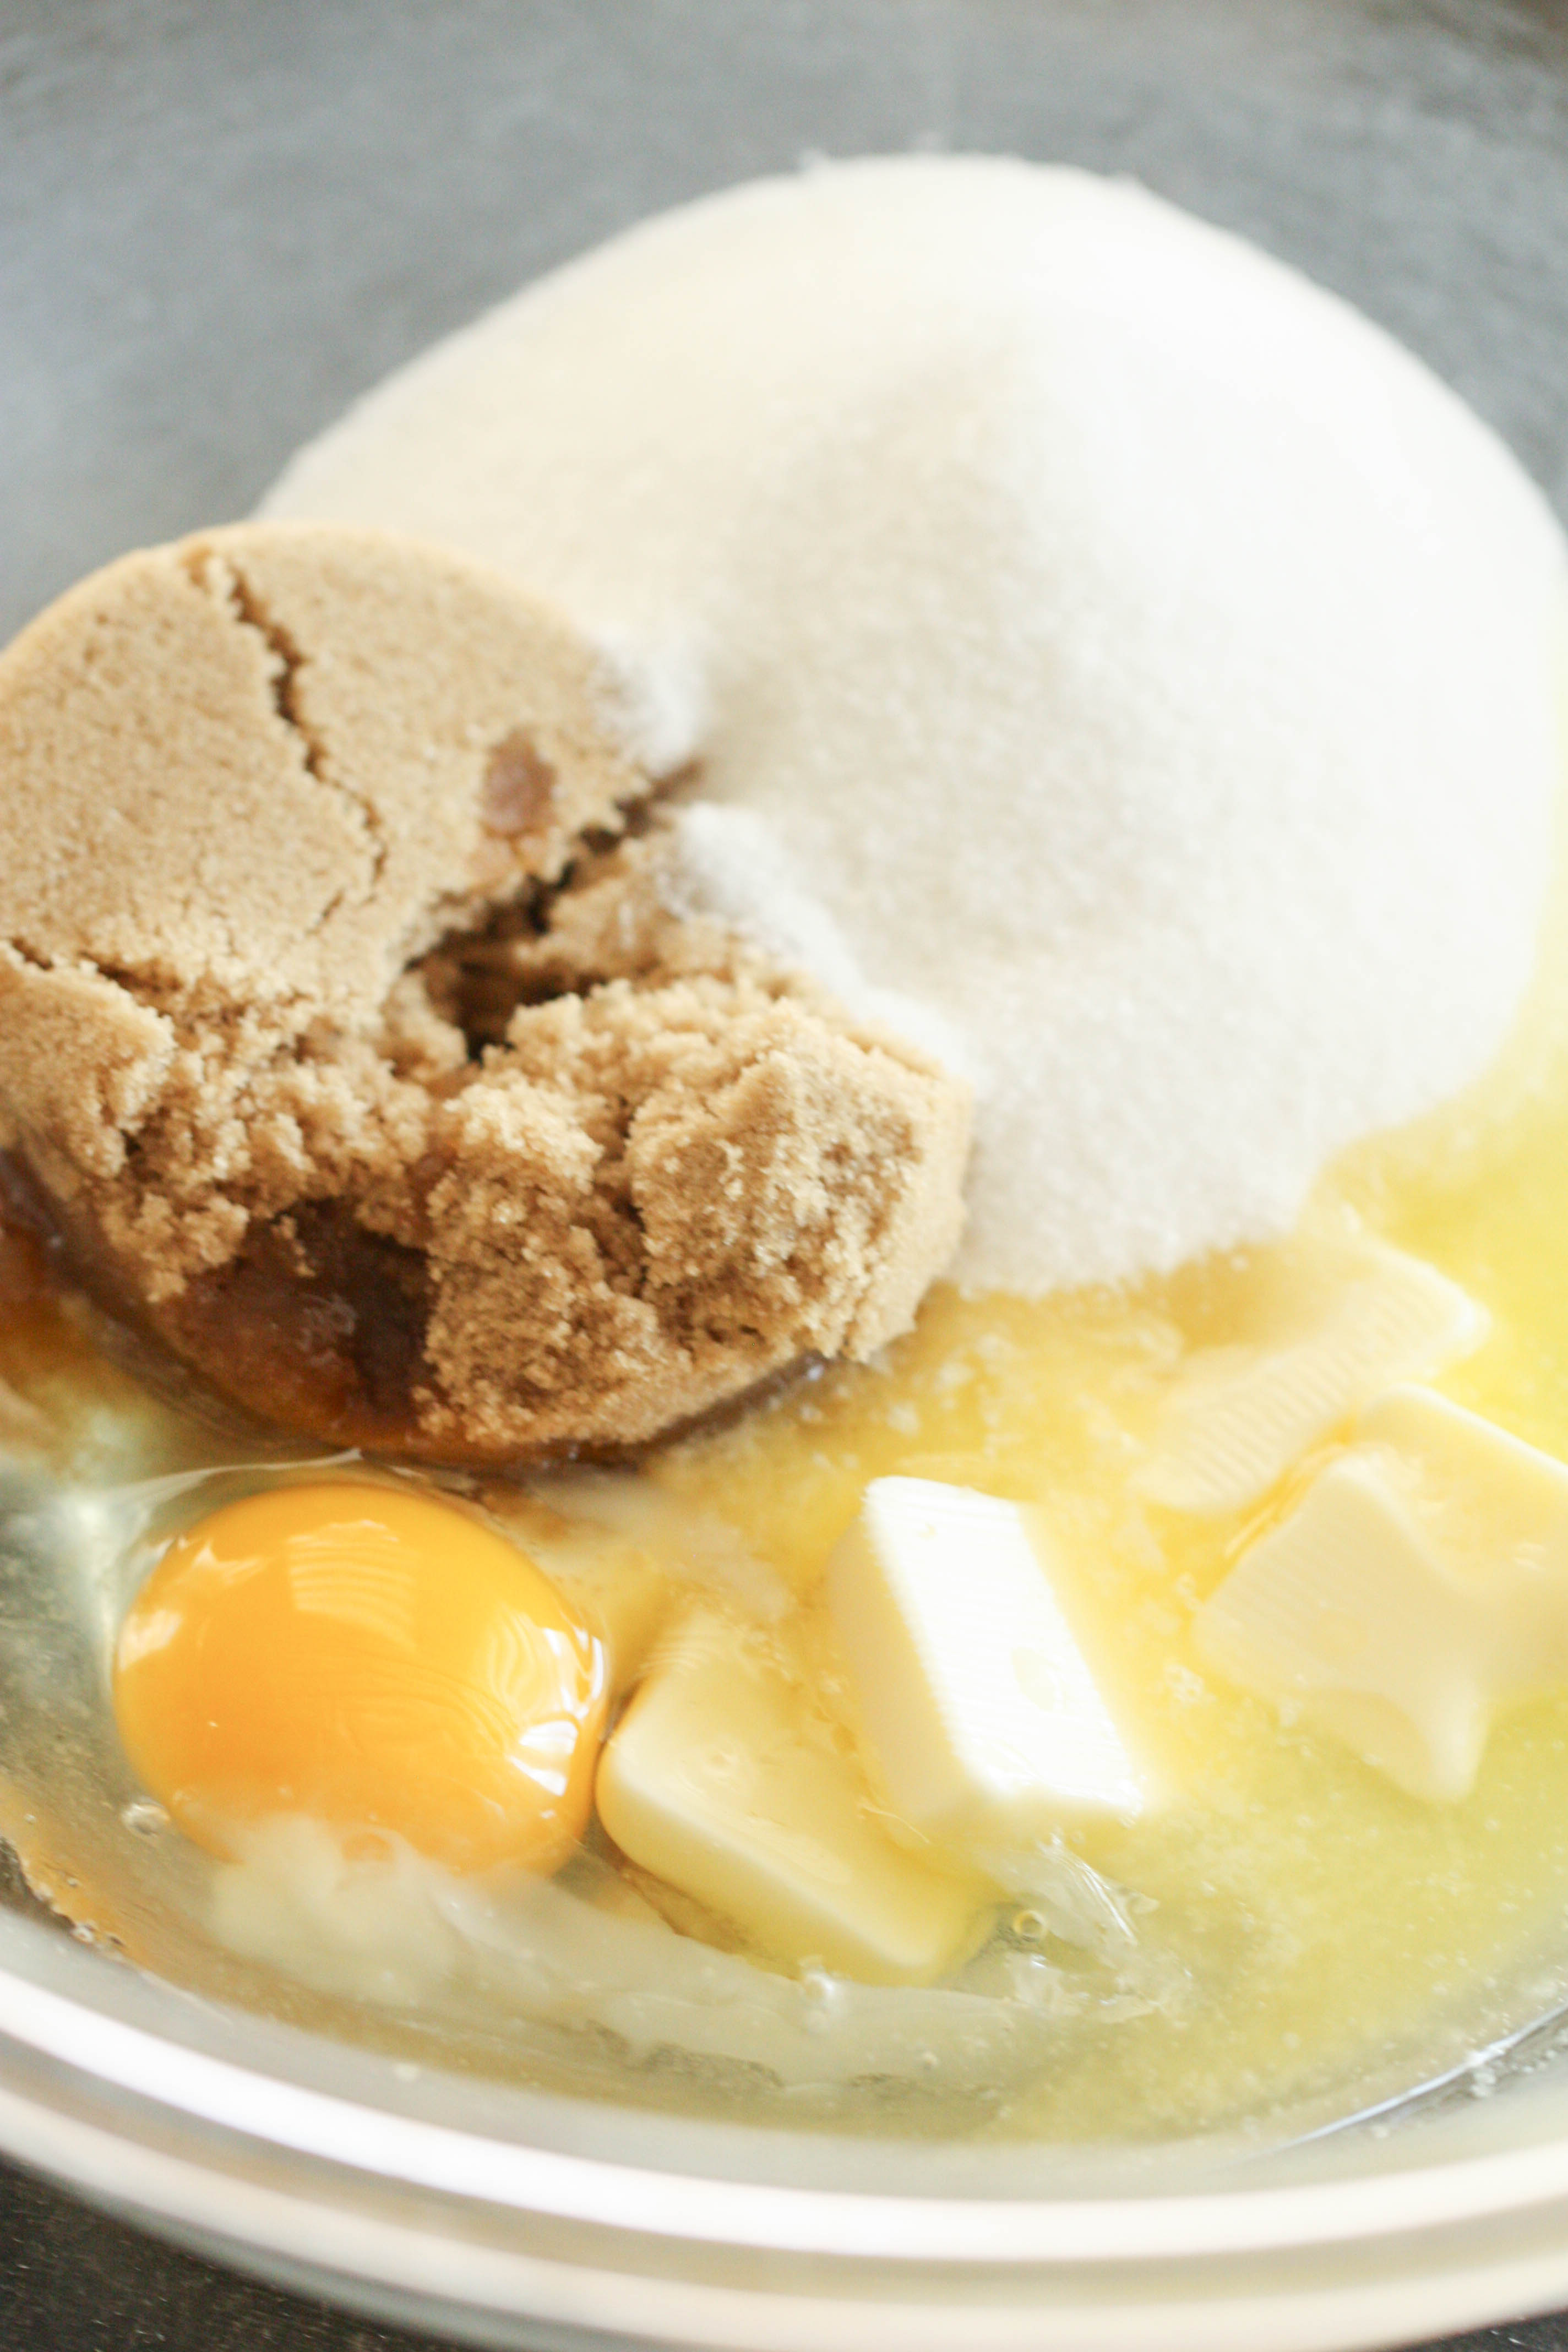 Sugars and Eggs in mixing bowl